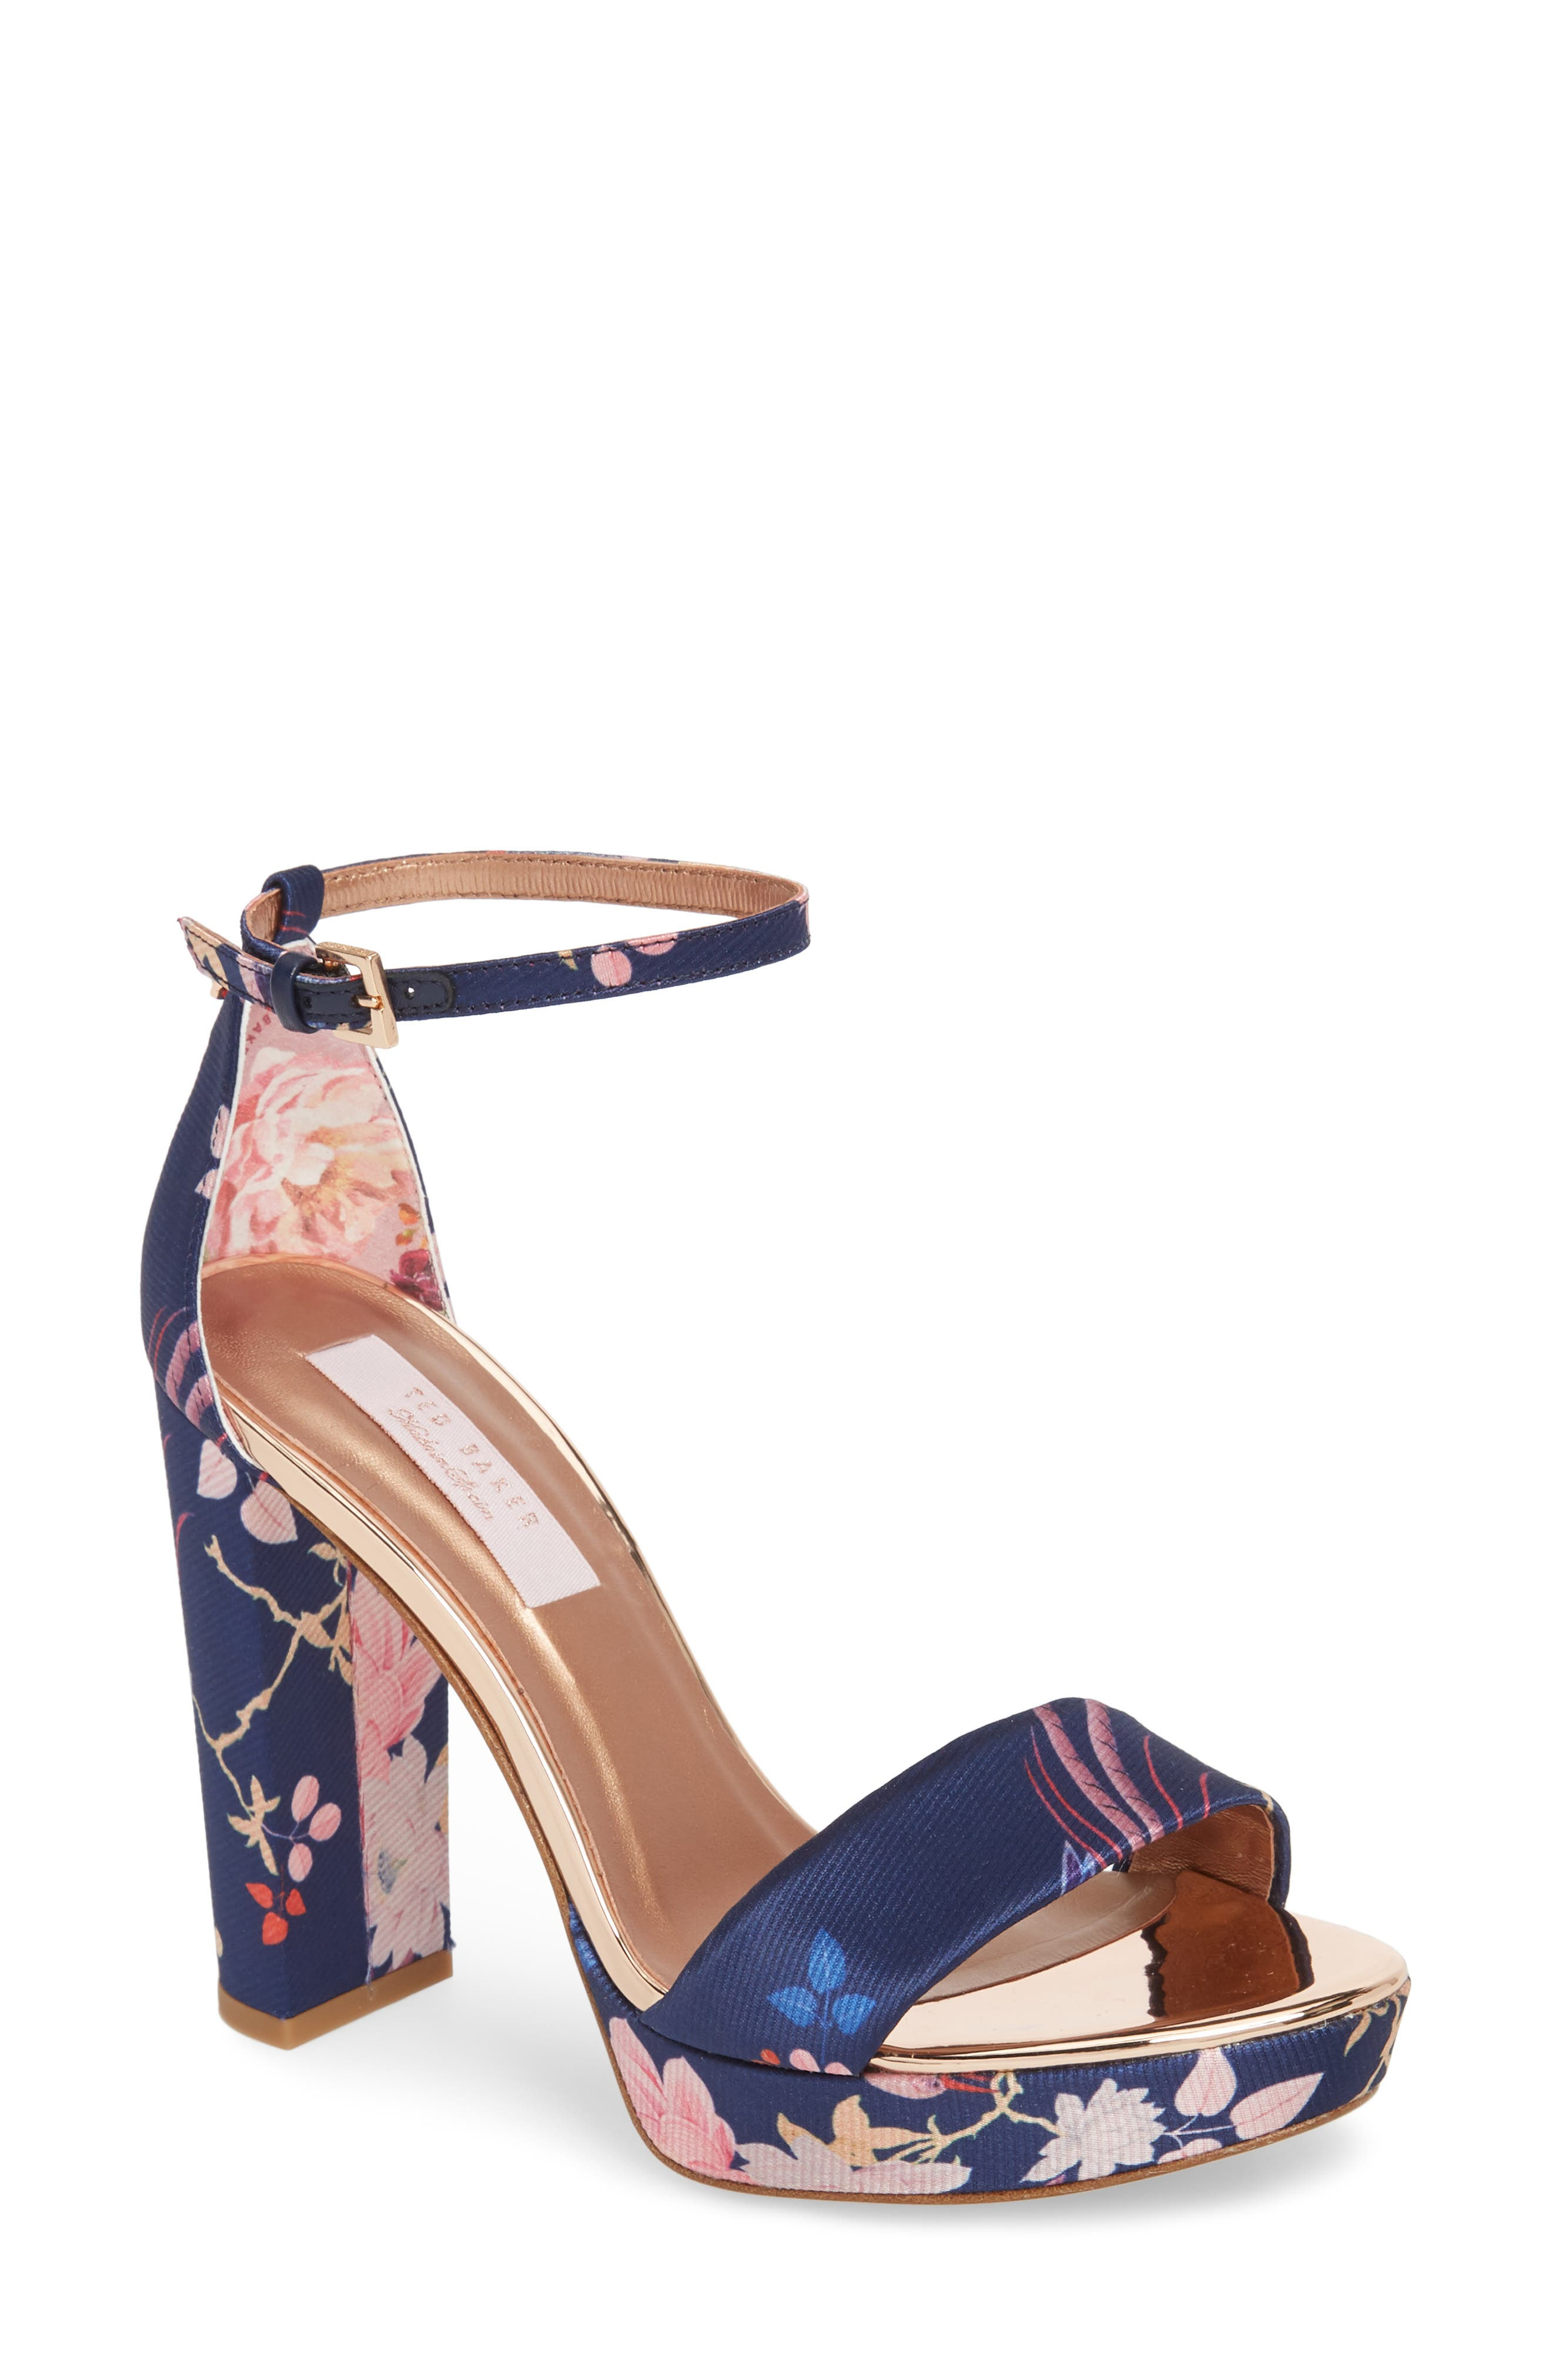 Junaa Sandal,                             Main thumbnail 1, color,                             Navy Fabric